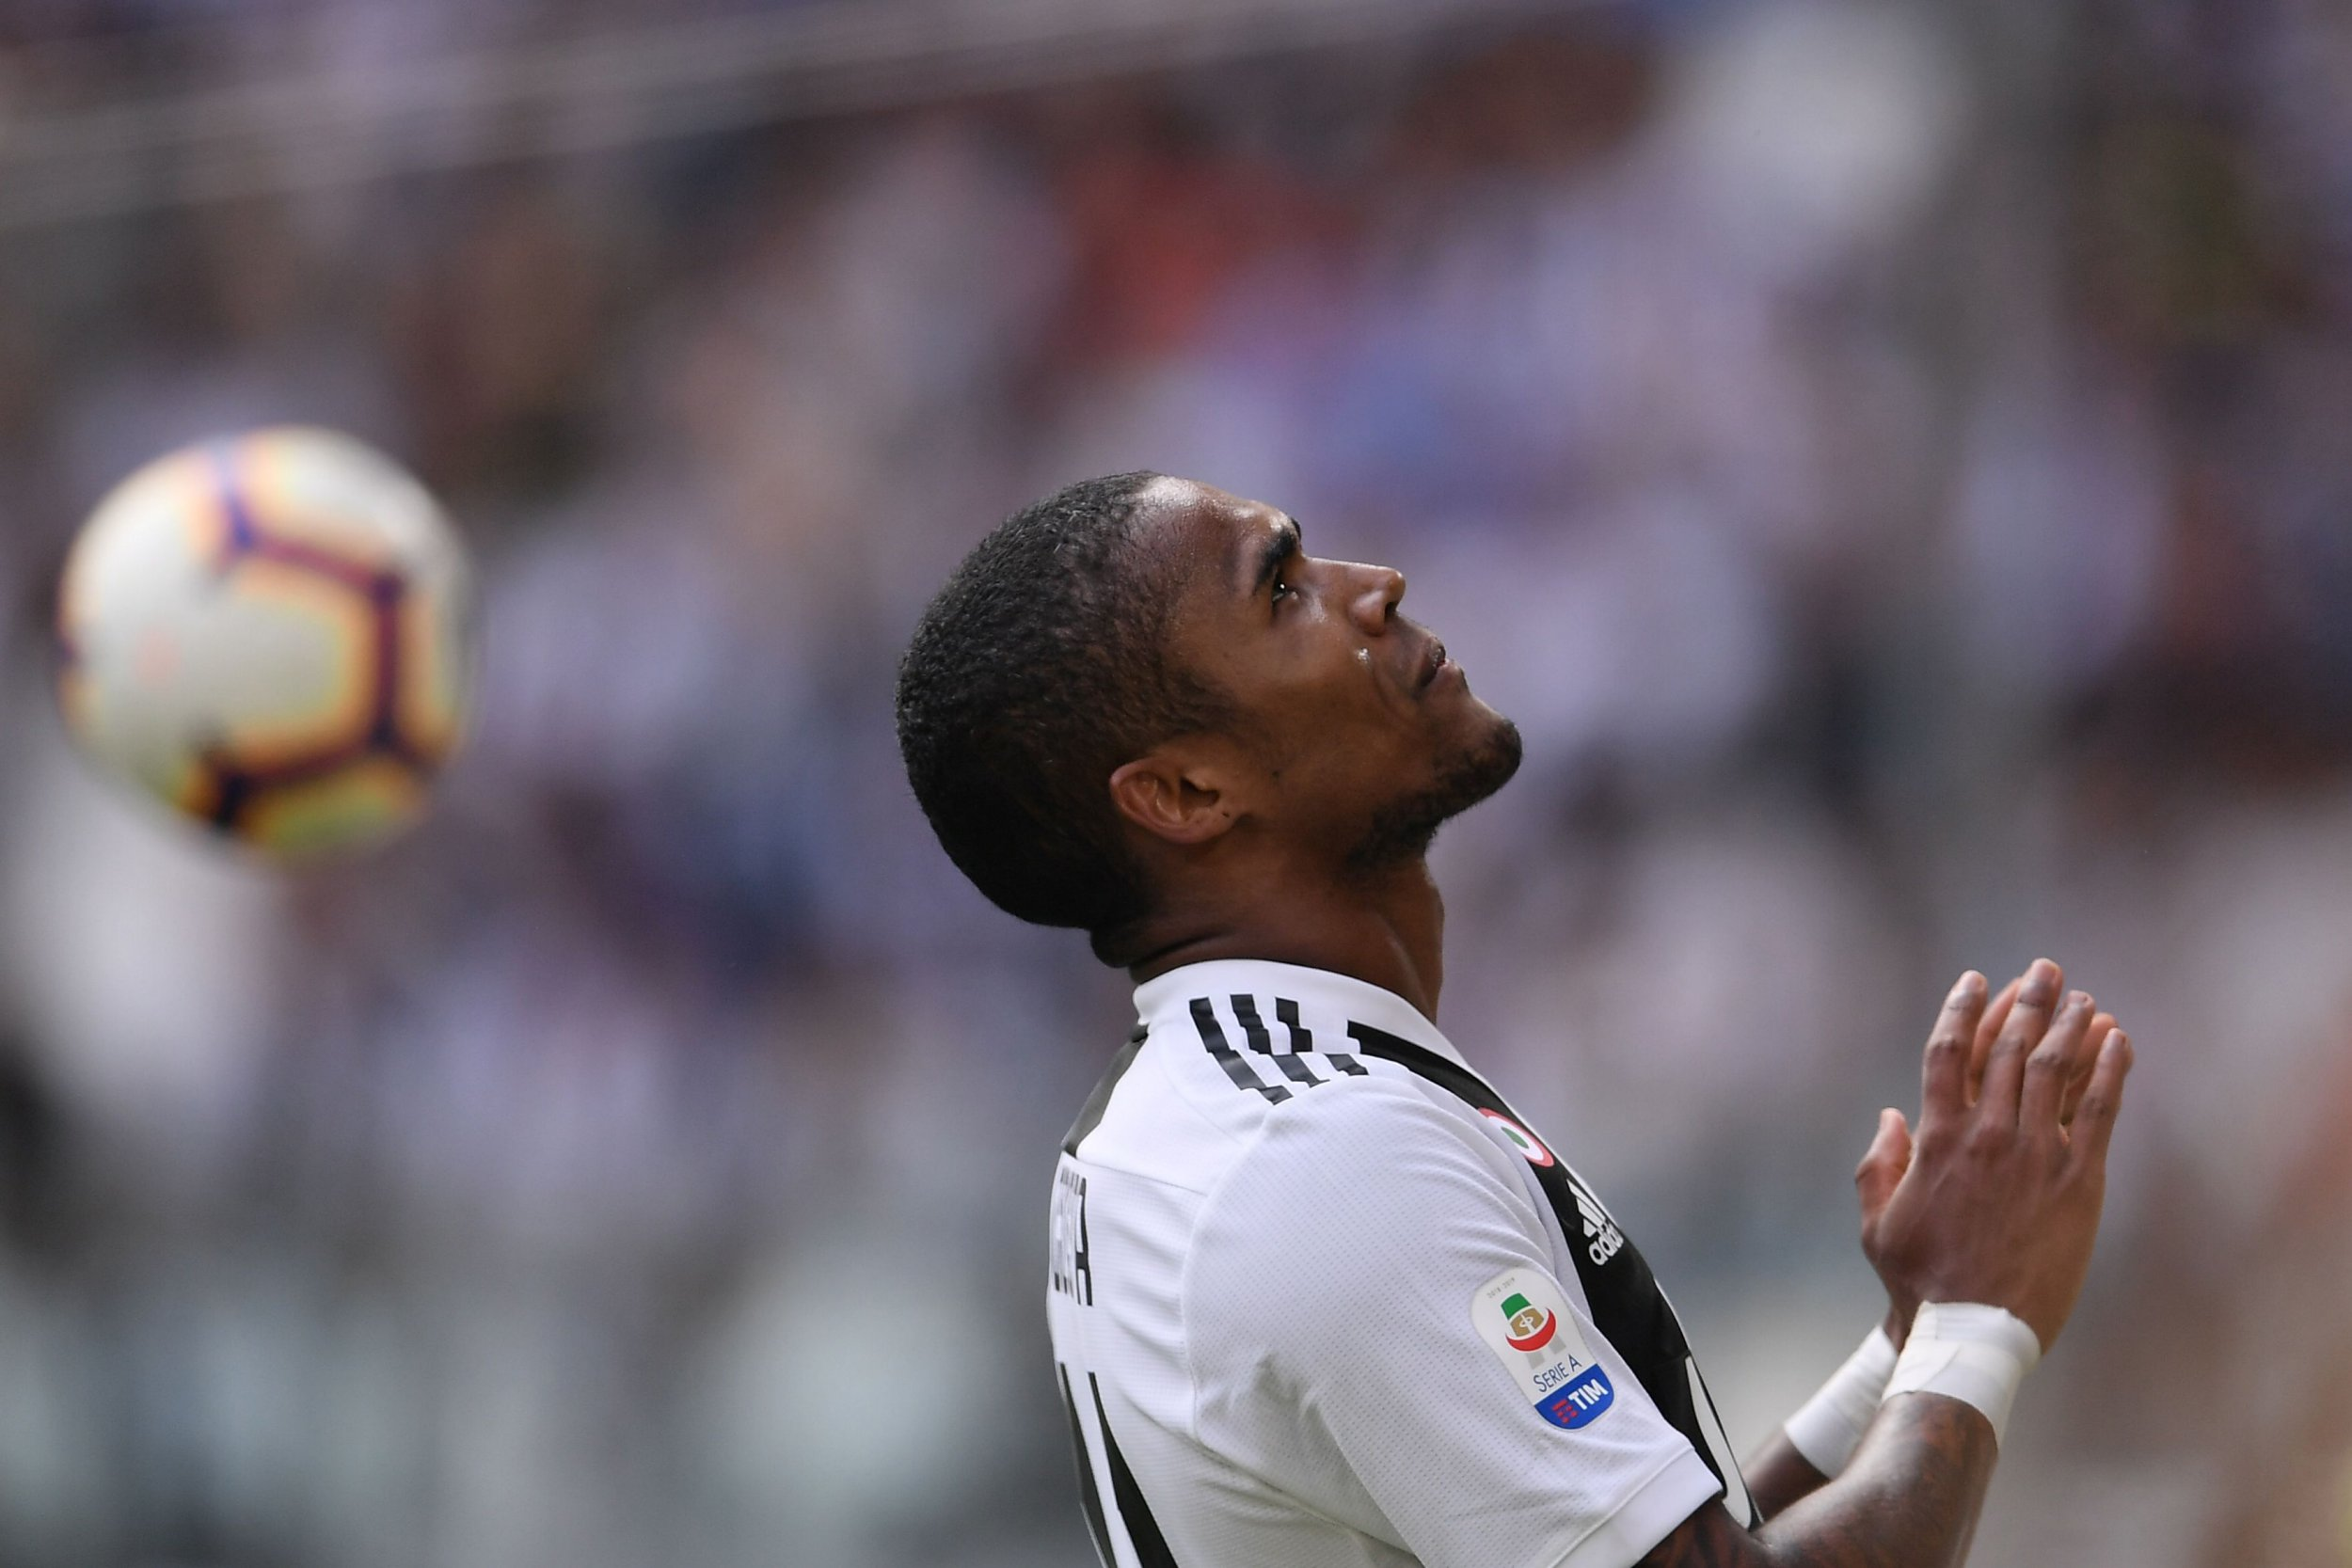 Juventus' Brazilian forward Douglas Costa reacts during the Italian Serie A football match Juventus vs Sassuolo on September 16, 2018 at the Juventus stadium in Turin. (Photo by Marco BERTORELLO / AFP)MARCO BERTORELLO/AFP/Getty Images